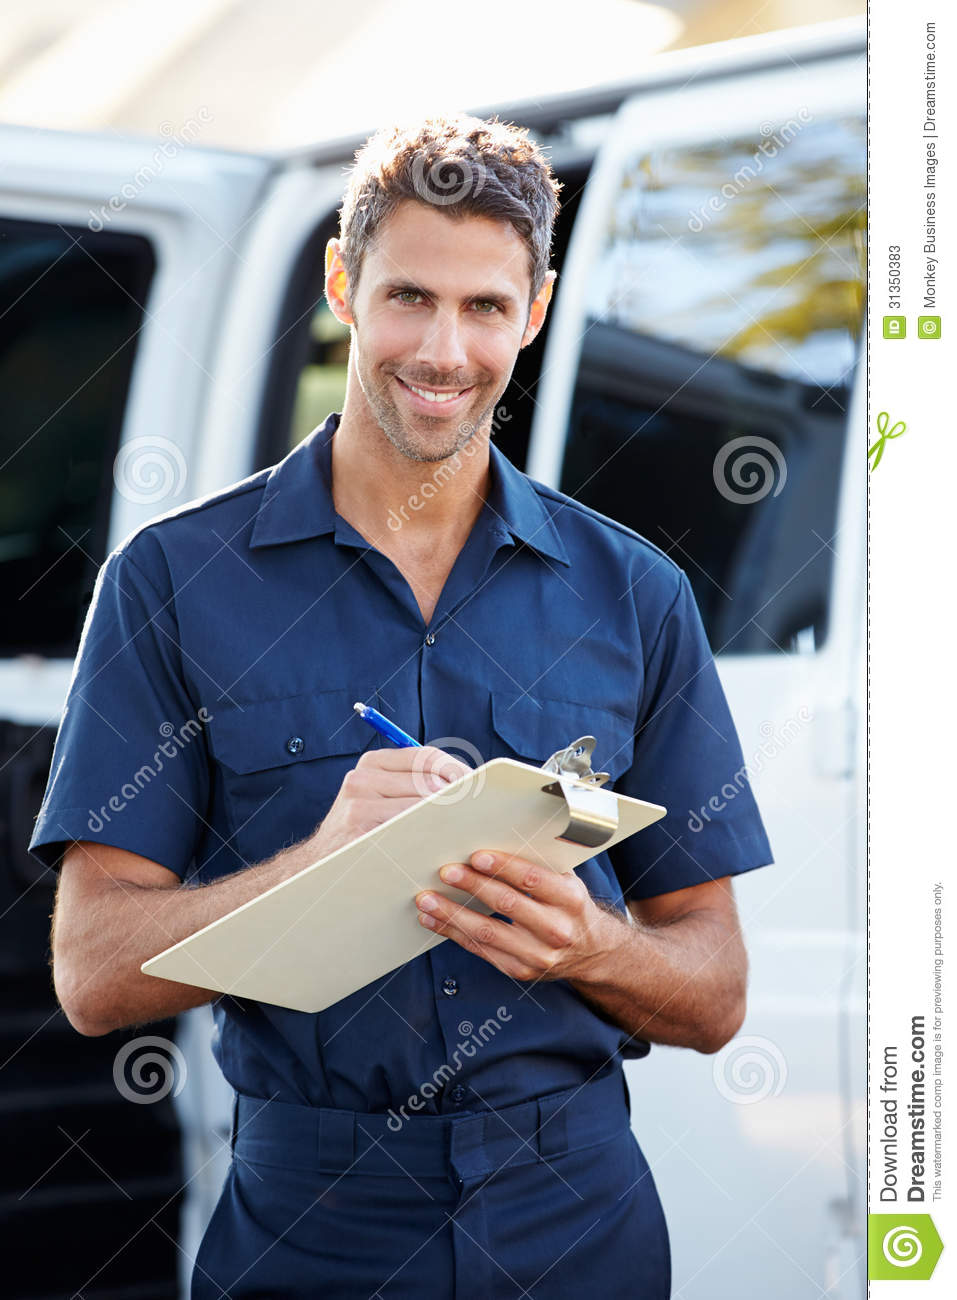 Portrait Of Delivery Driver With Clipboard Stock Photos - Image ...